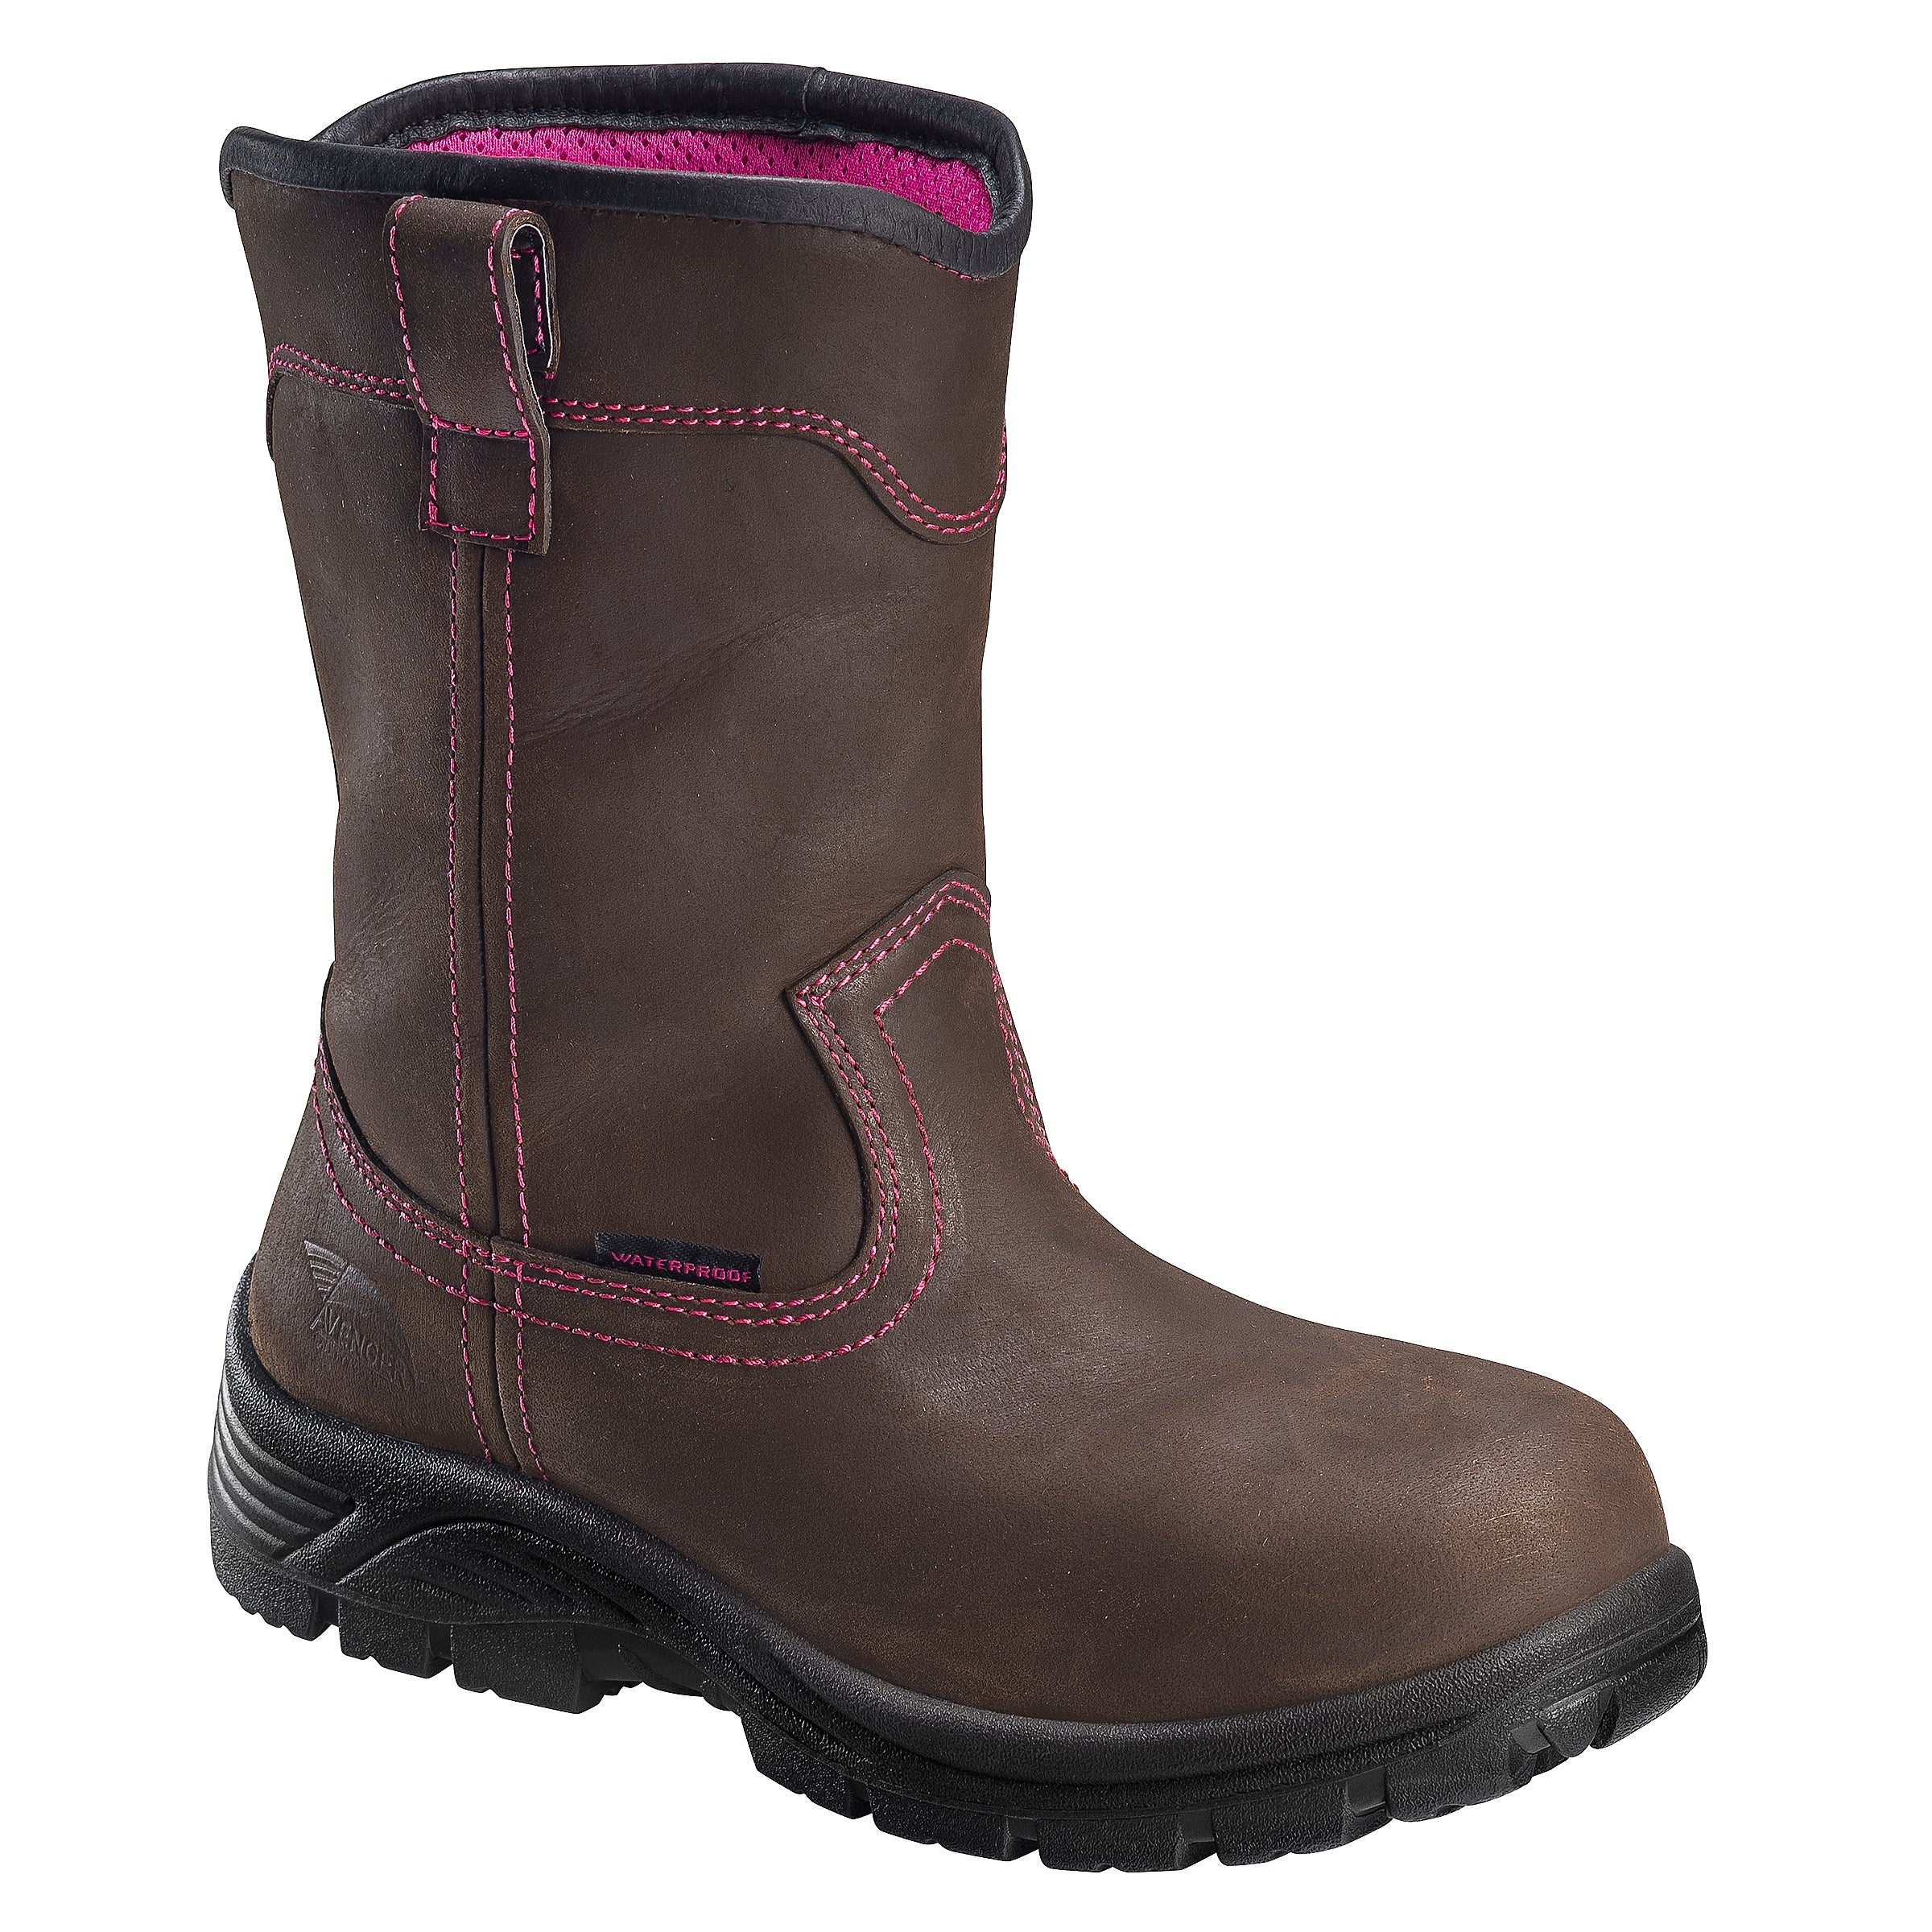 'Avenger' Women's Wellington WP Comp Toe EH - Brown / Pink